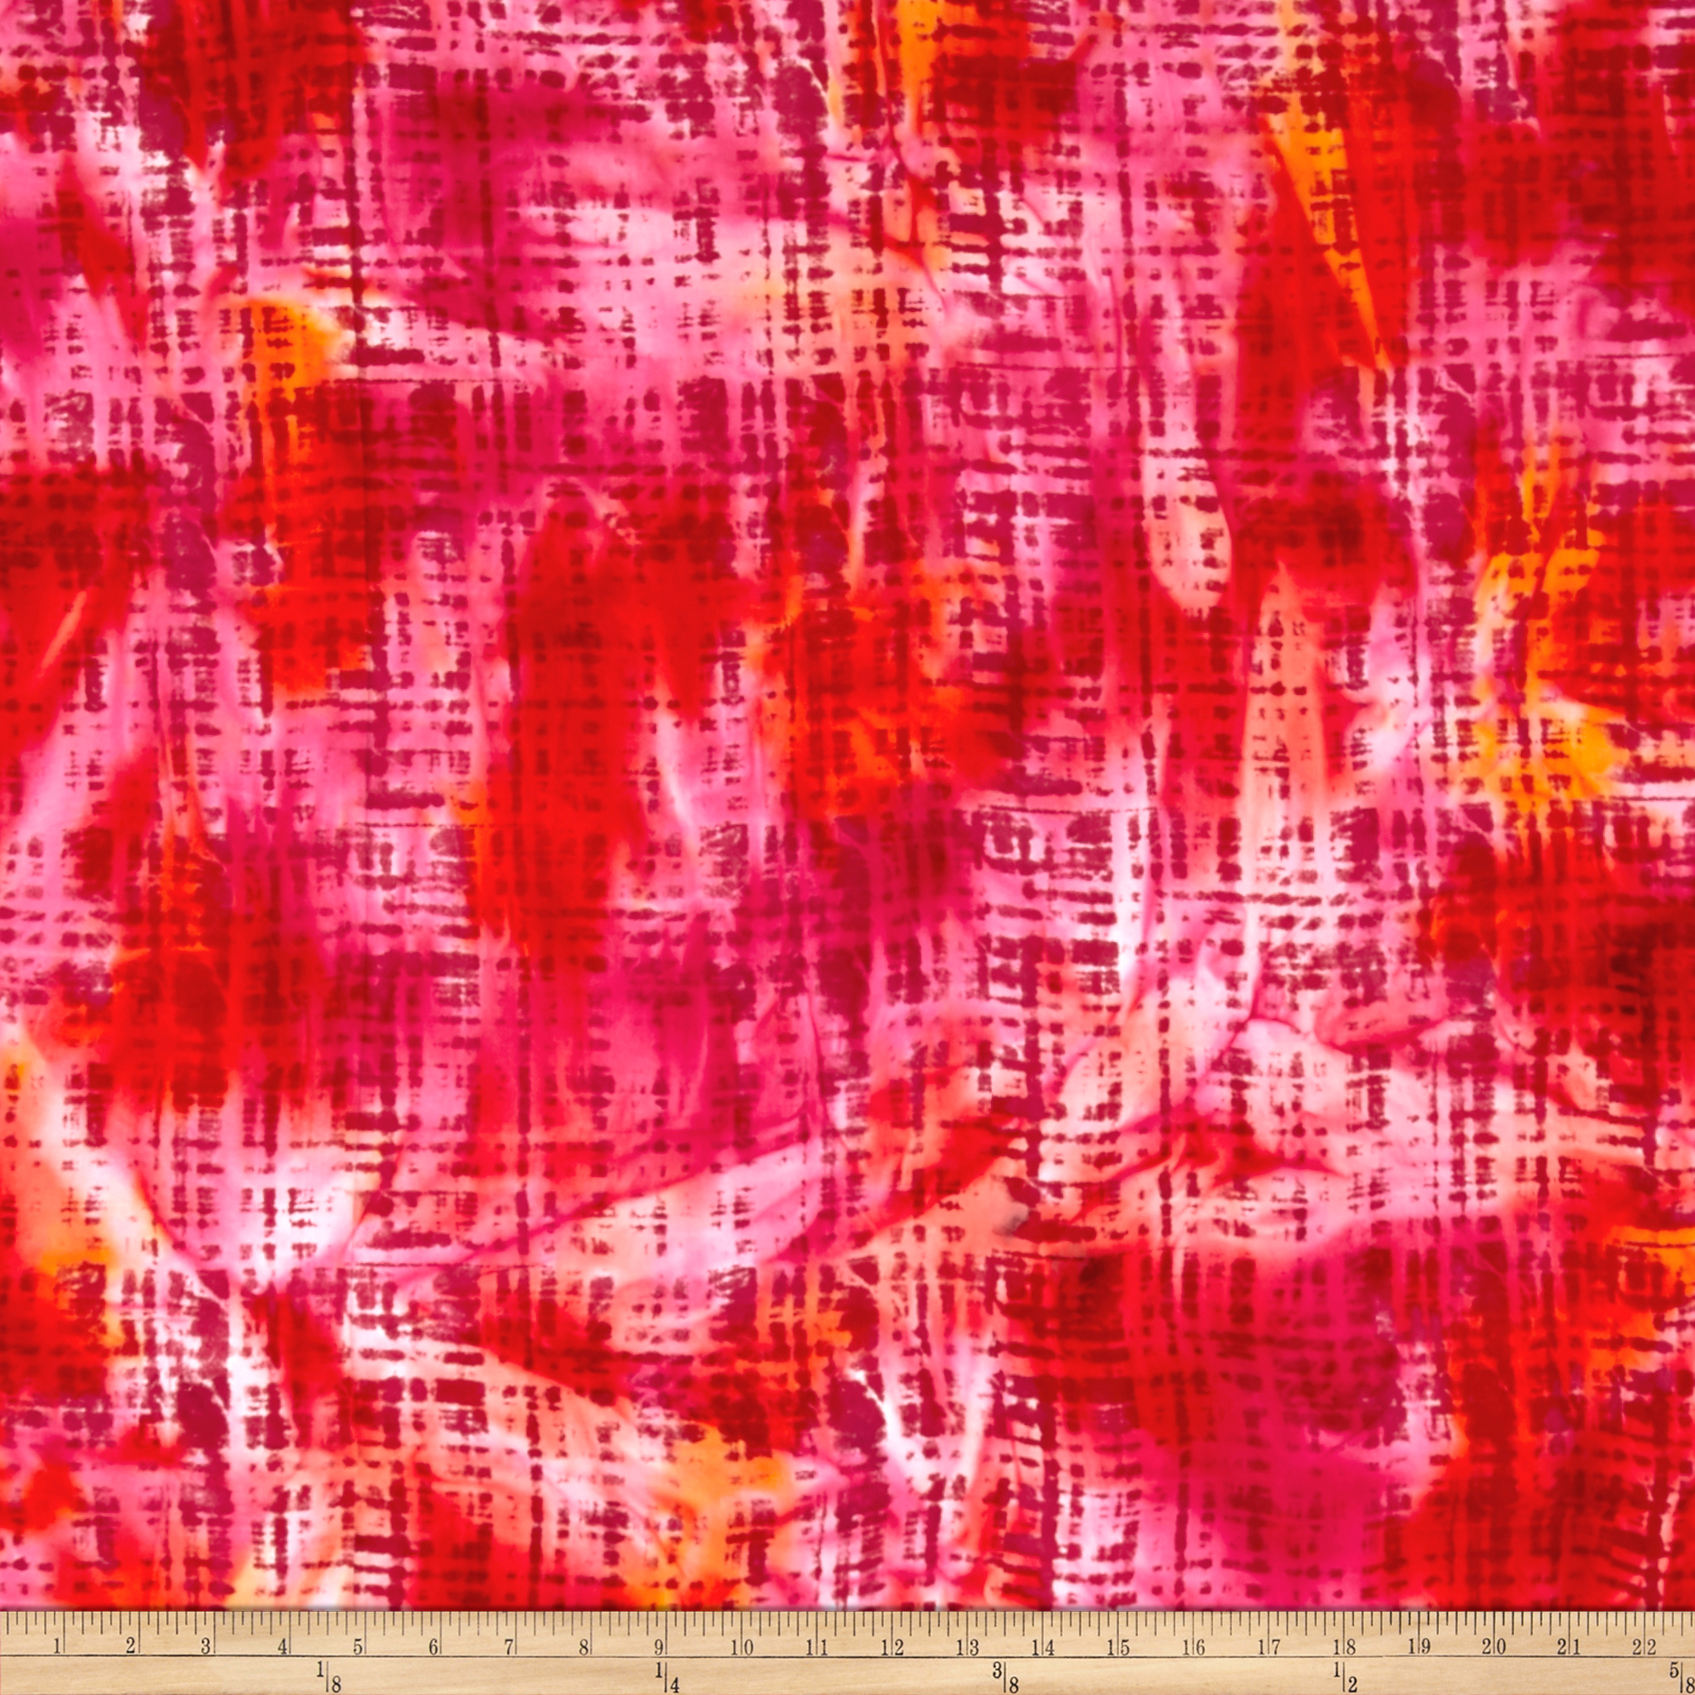 Hudson Bay Rayon Challis Abstract Plaid Red/Orange/Yellow Fabric by Textile Creations in USA